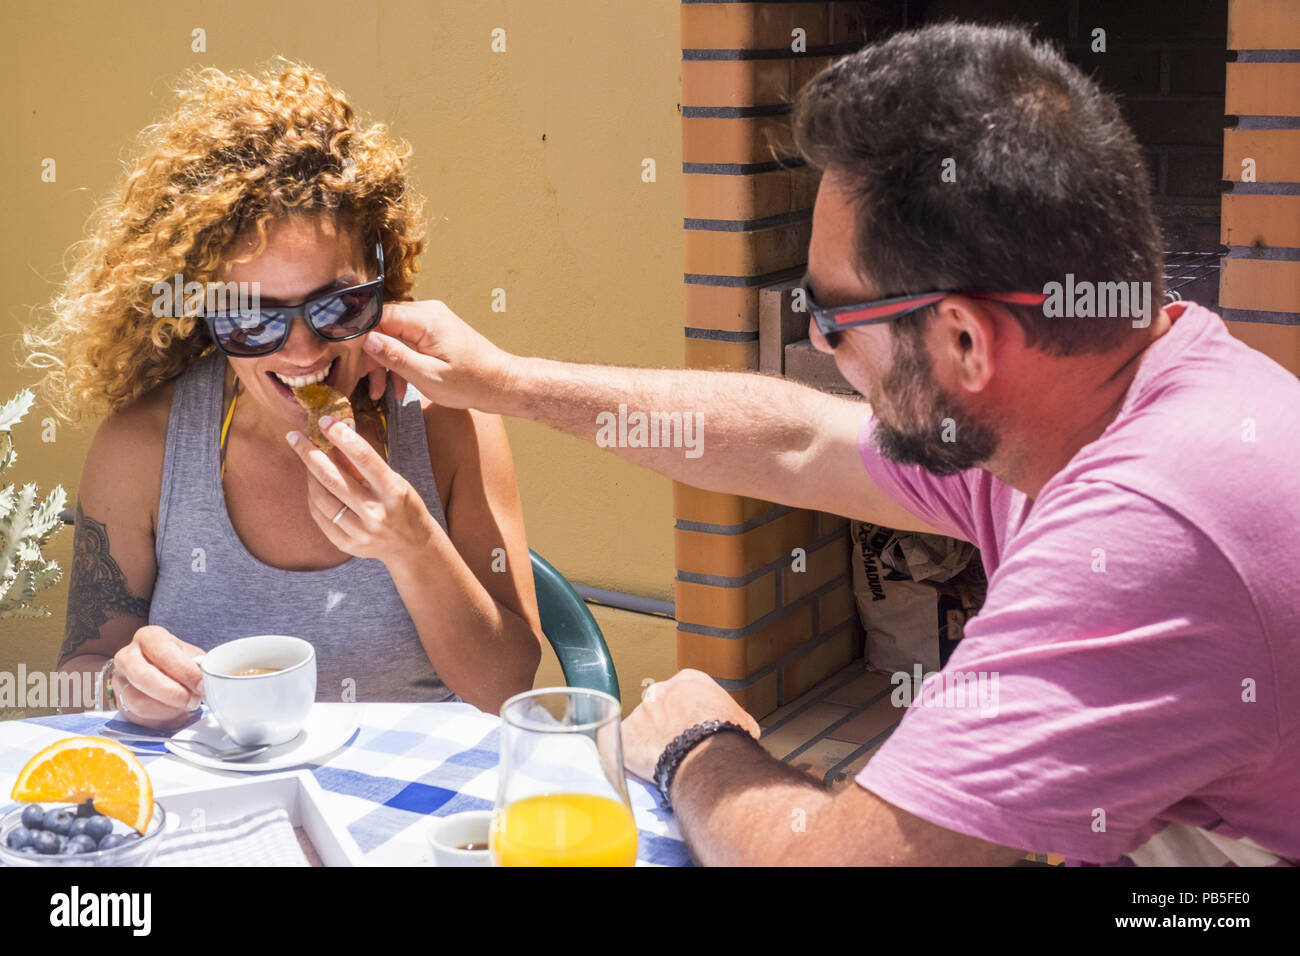 happy couple of man and woman married and in relationship having breakfast together in the sunny morning at home outside. smile and cheerful with tend - Stock Image